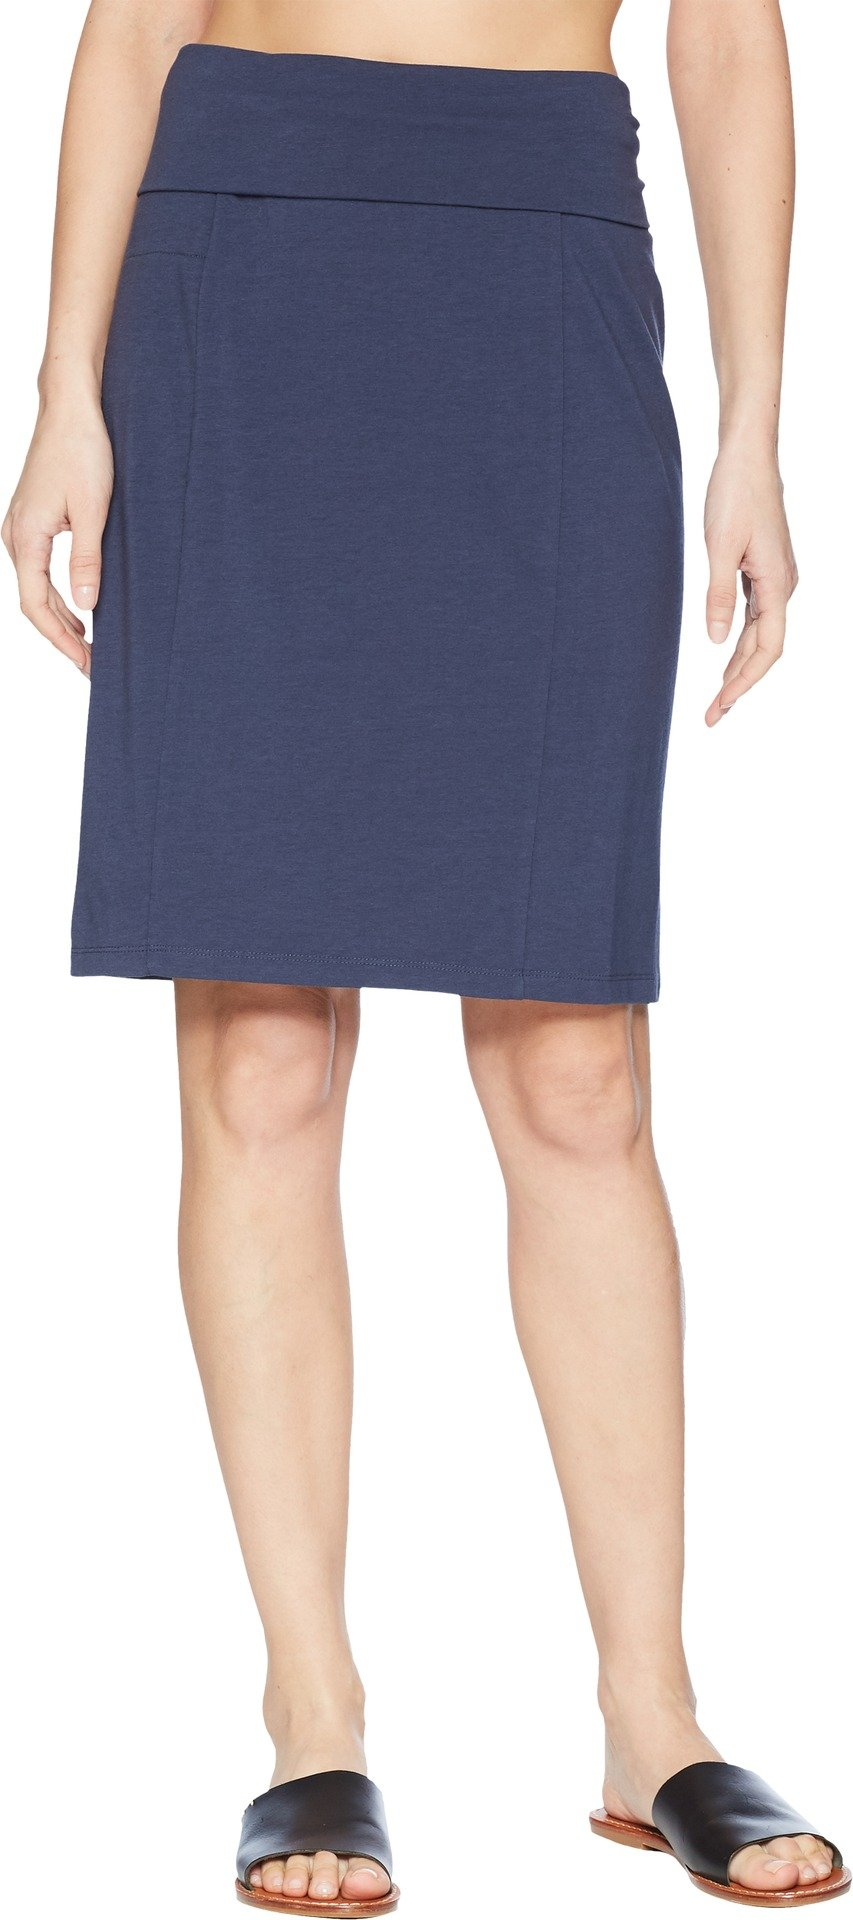 Royal Robbins Women's All-Around Skirt, Navy, X-Small